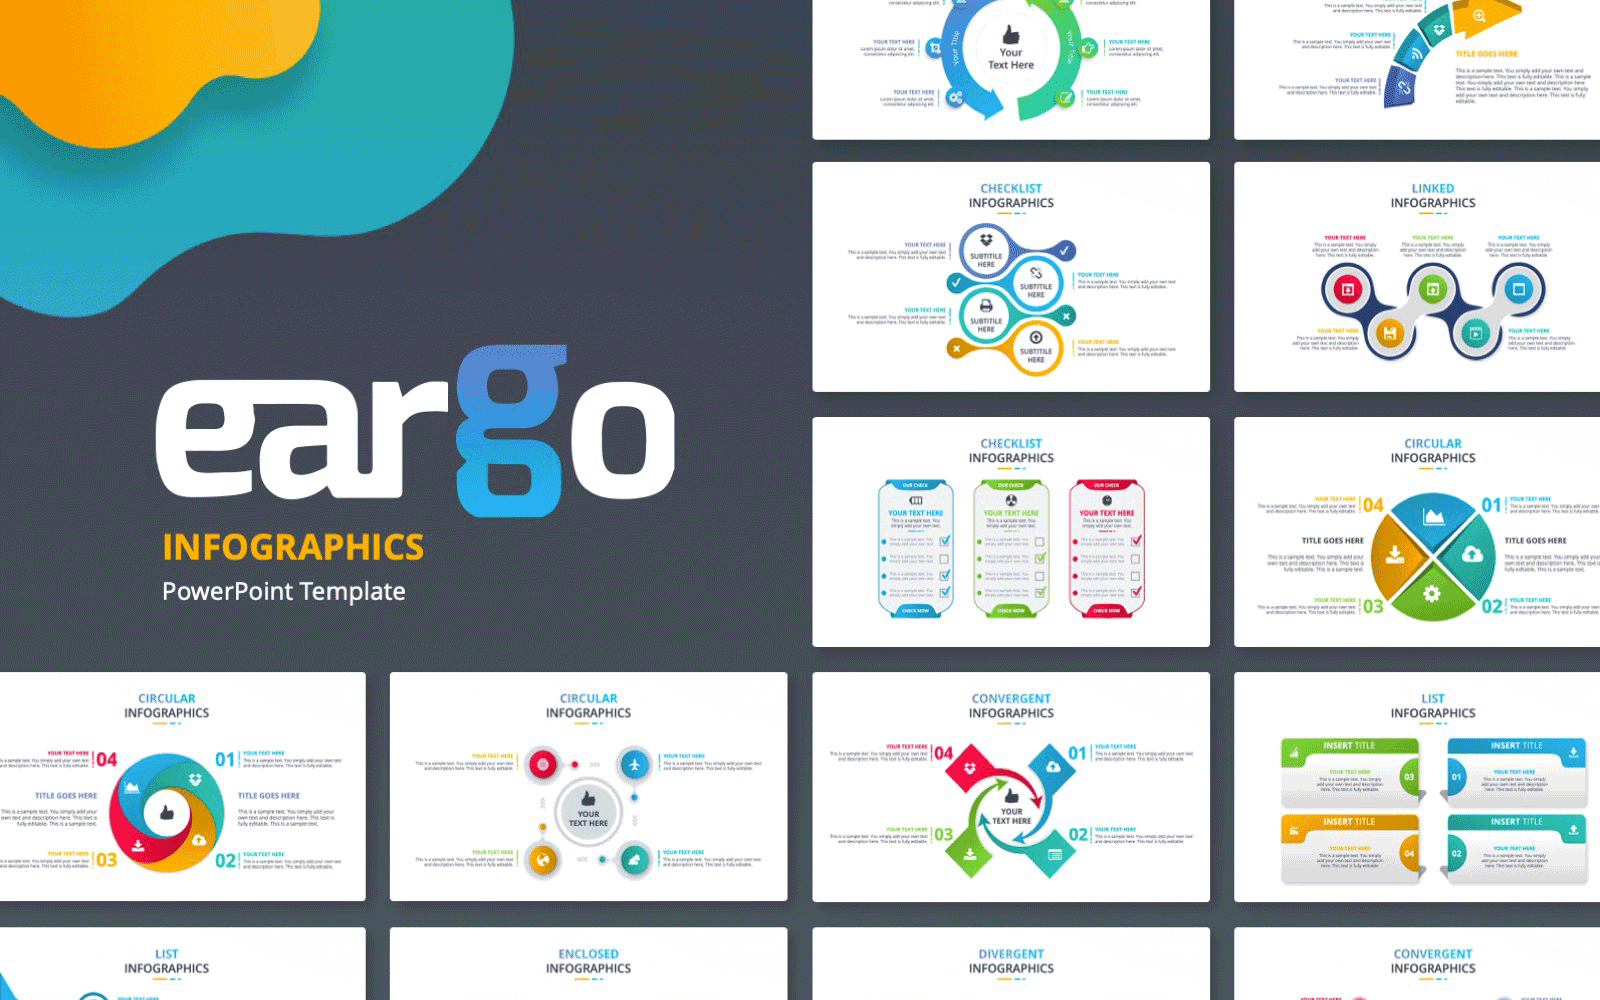 Eargo 4 – Infographics PowerPoint template